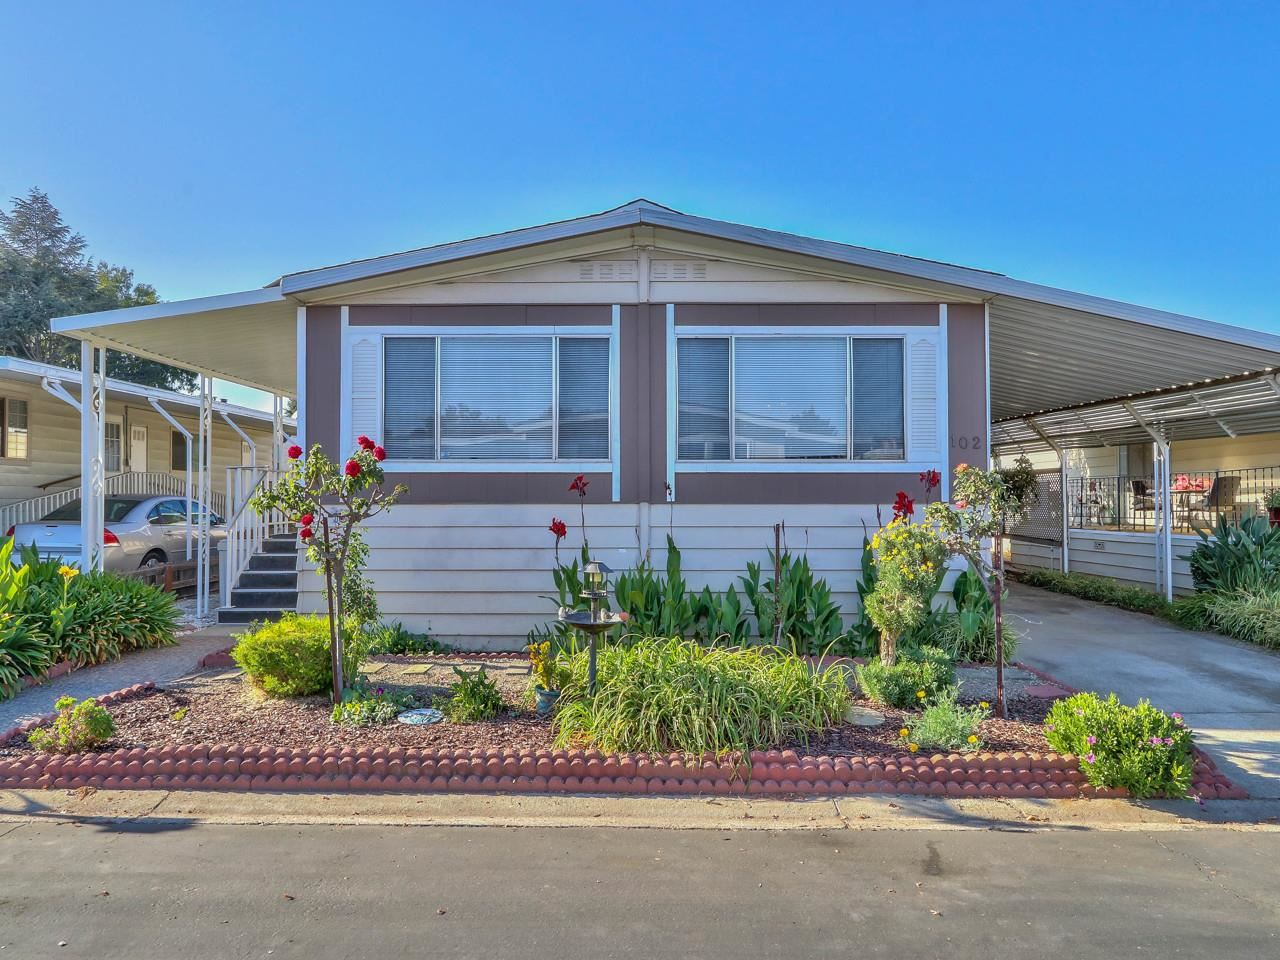 102 Melody 102, Morgan Hill, CA 95037 - #: ML81817375